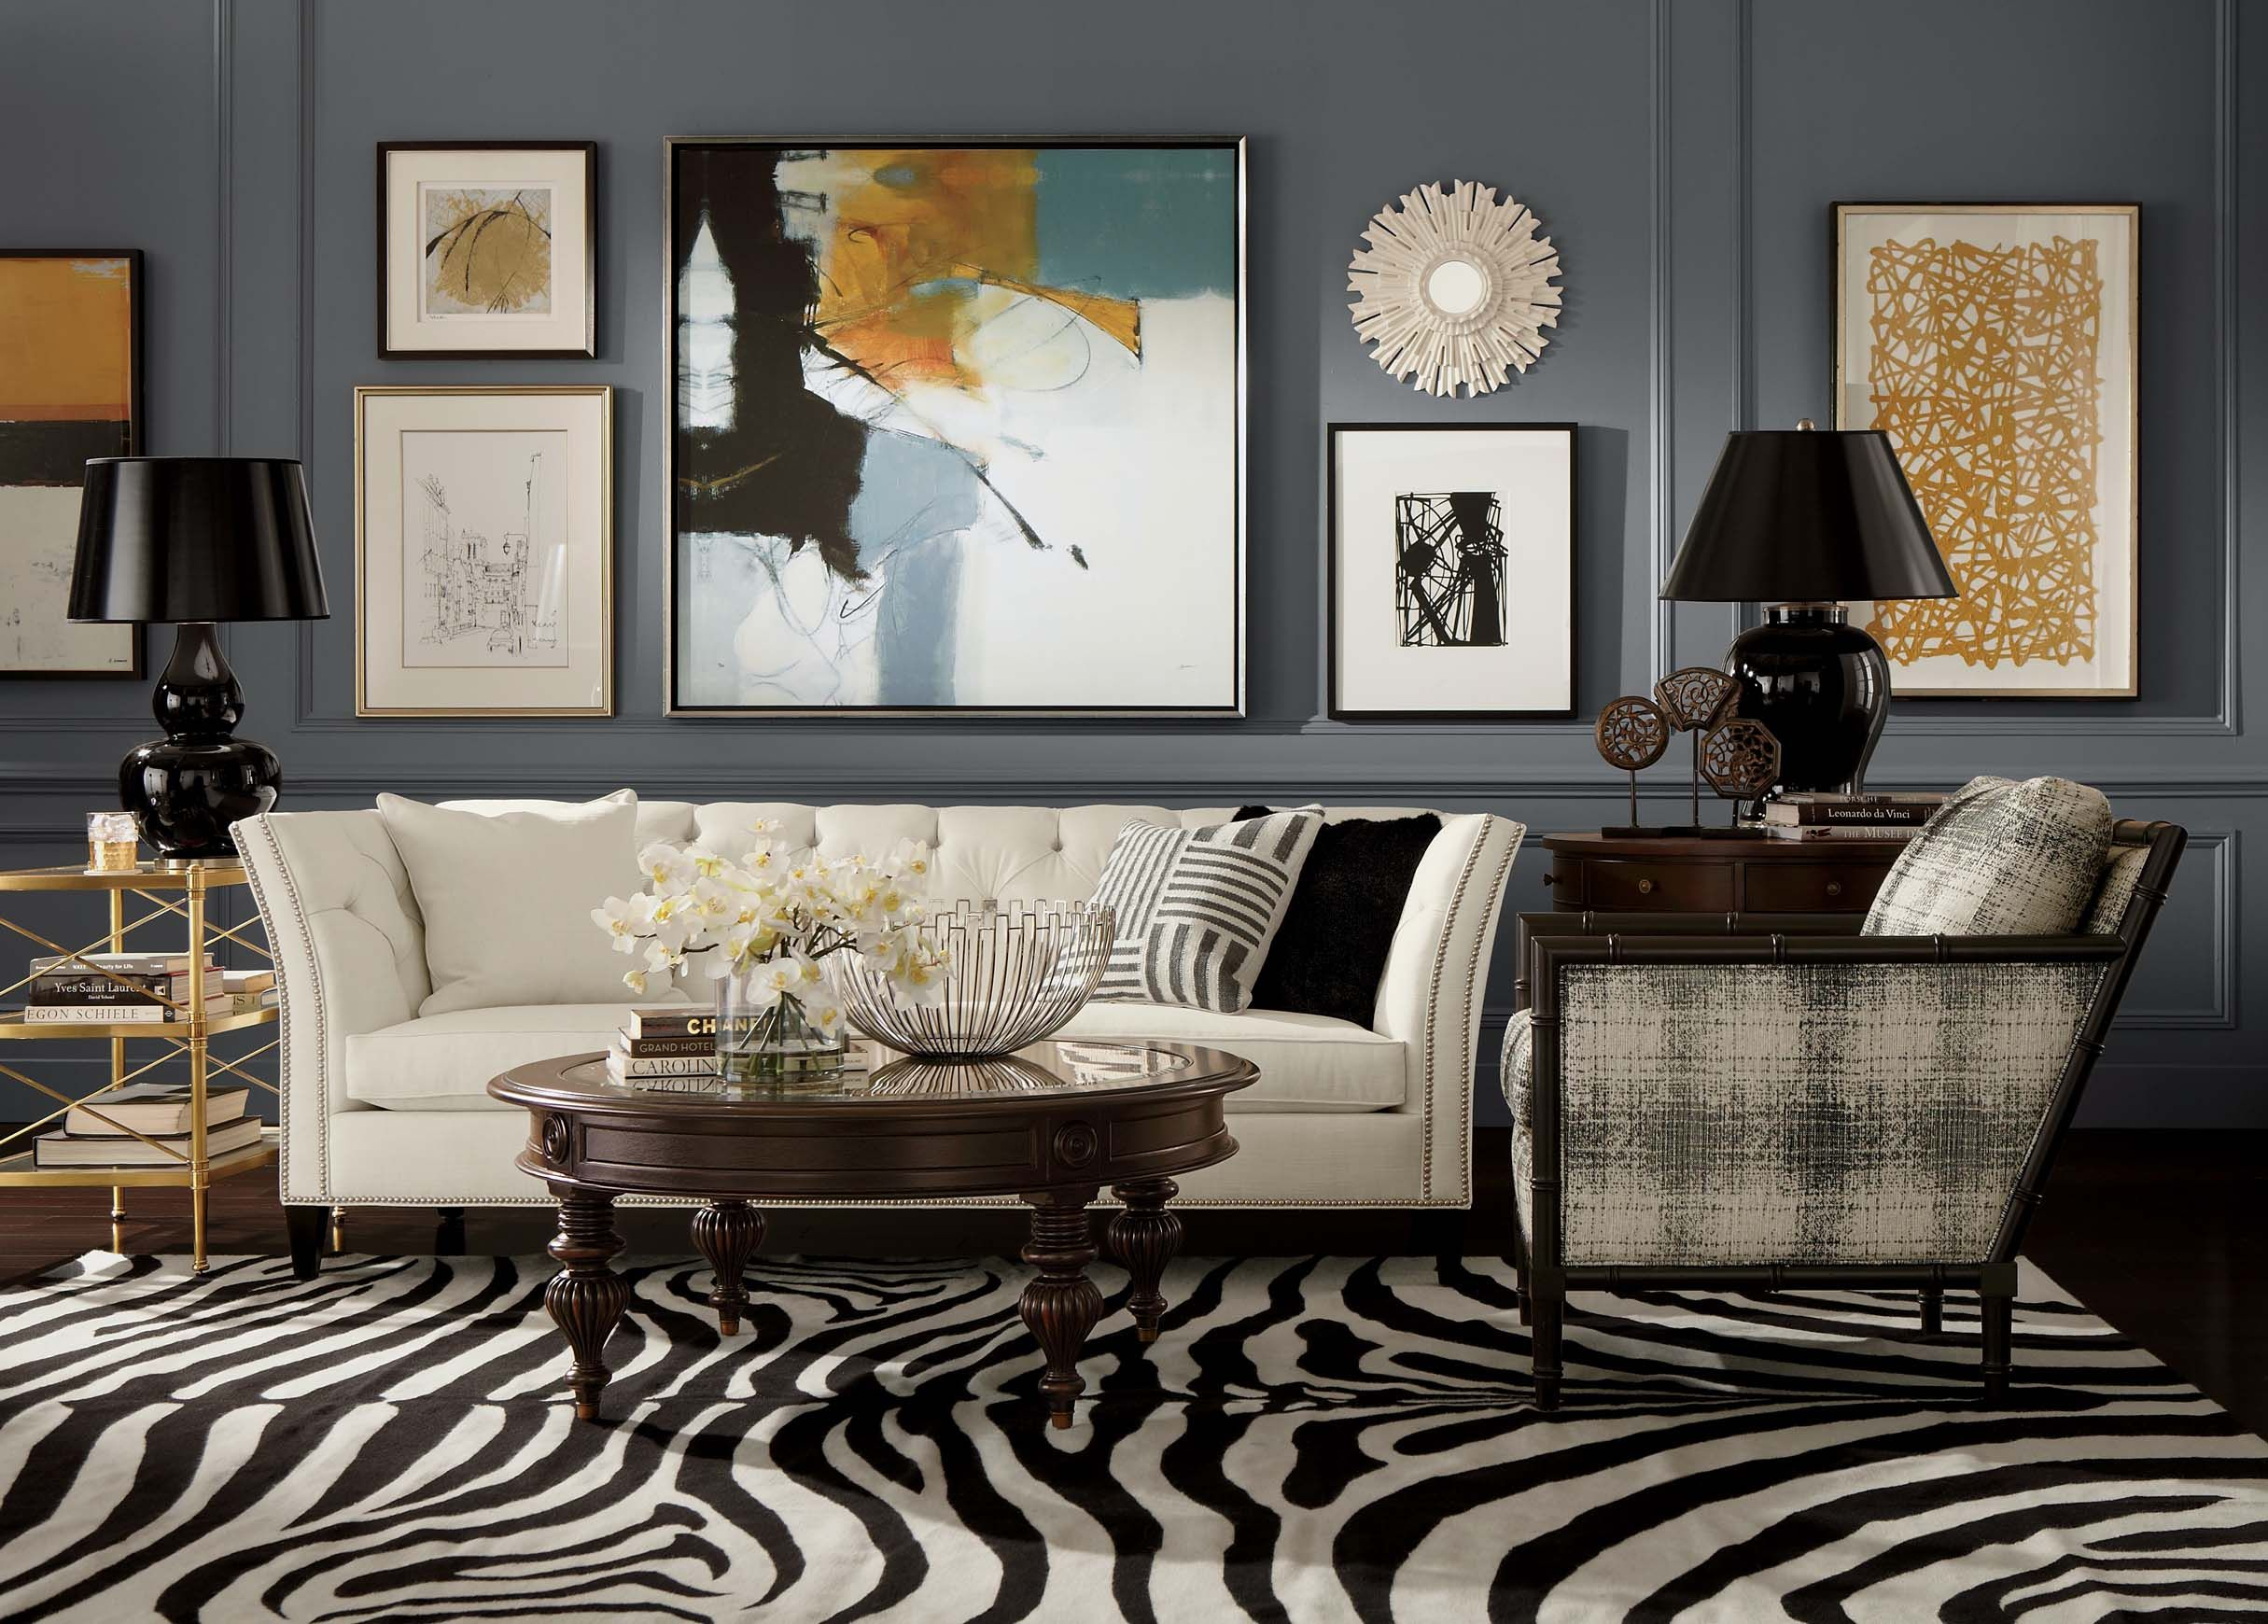 This Ethan Allen Zebra Rug In Expresso/ivory Gives This Room Some  Spectacular Style.